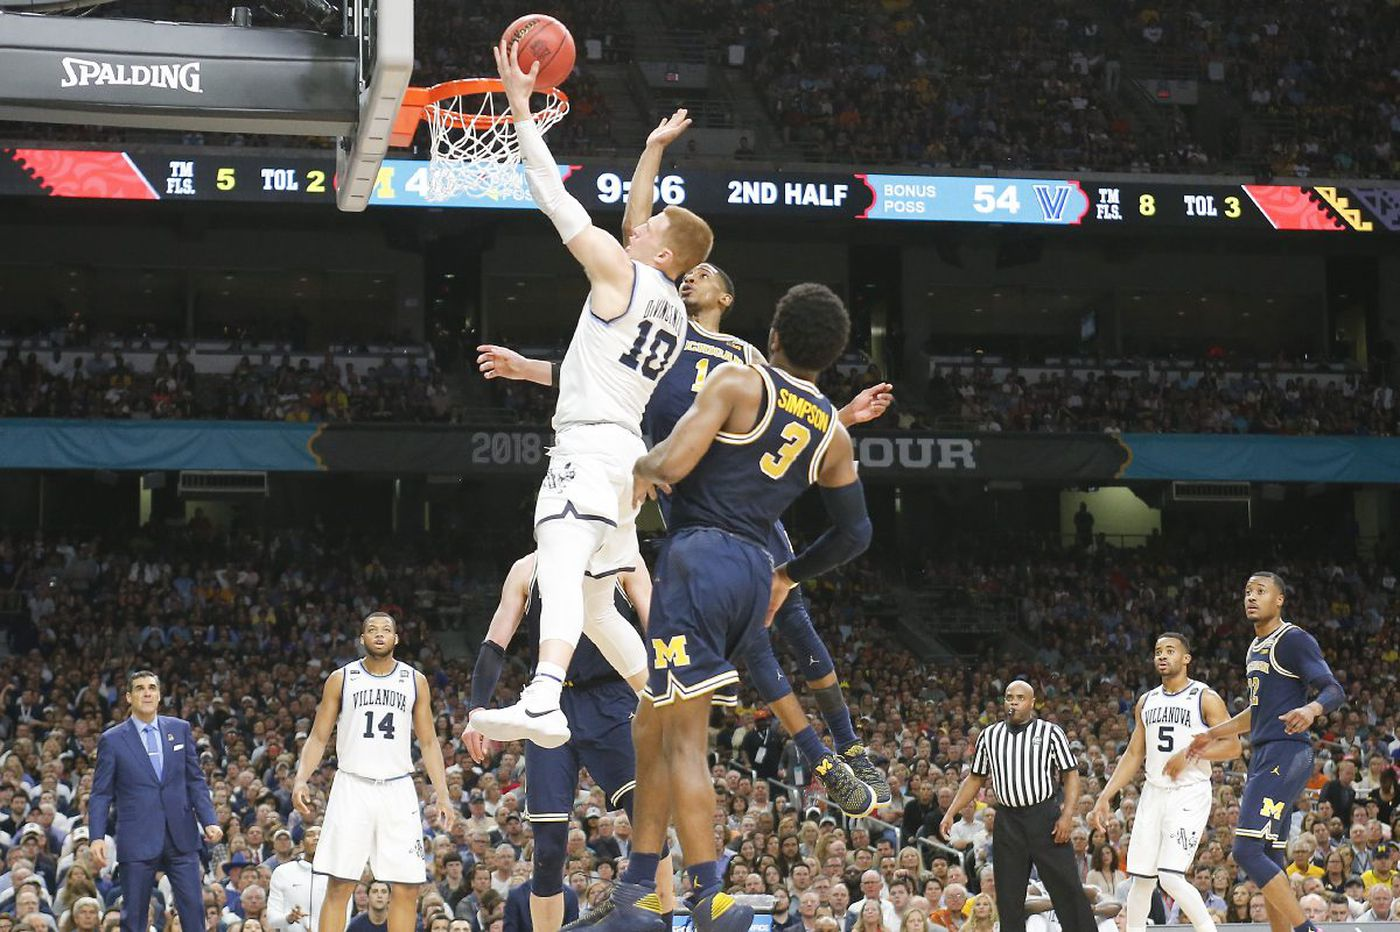 d4783080269d Villanova s Donte DiVincenzo is NCAA championship game star with record 31  points